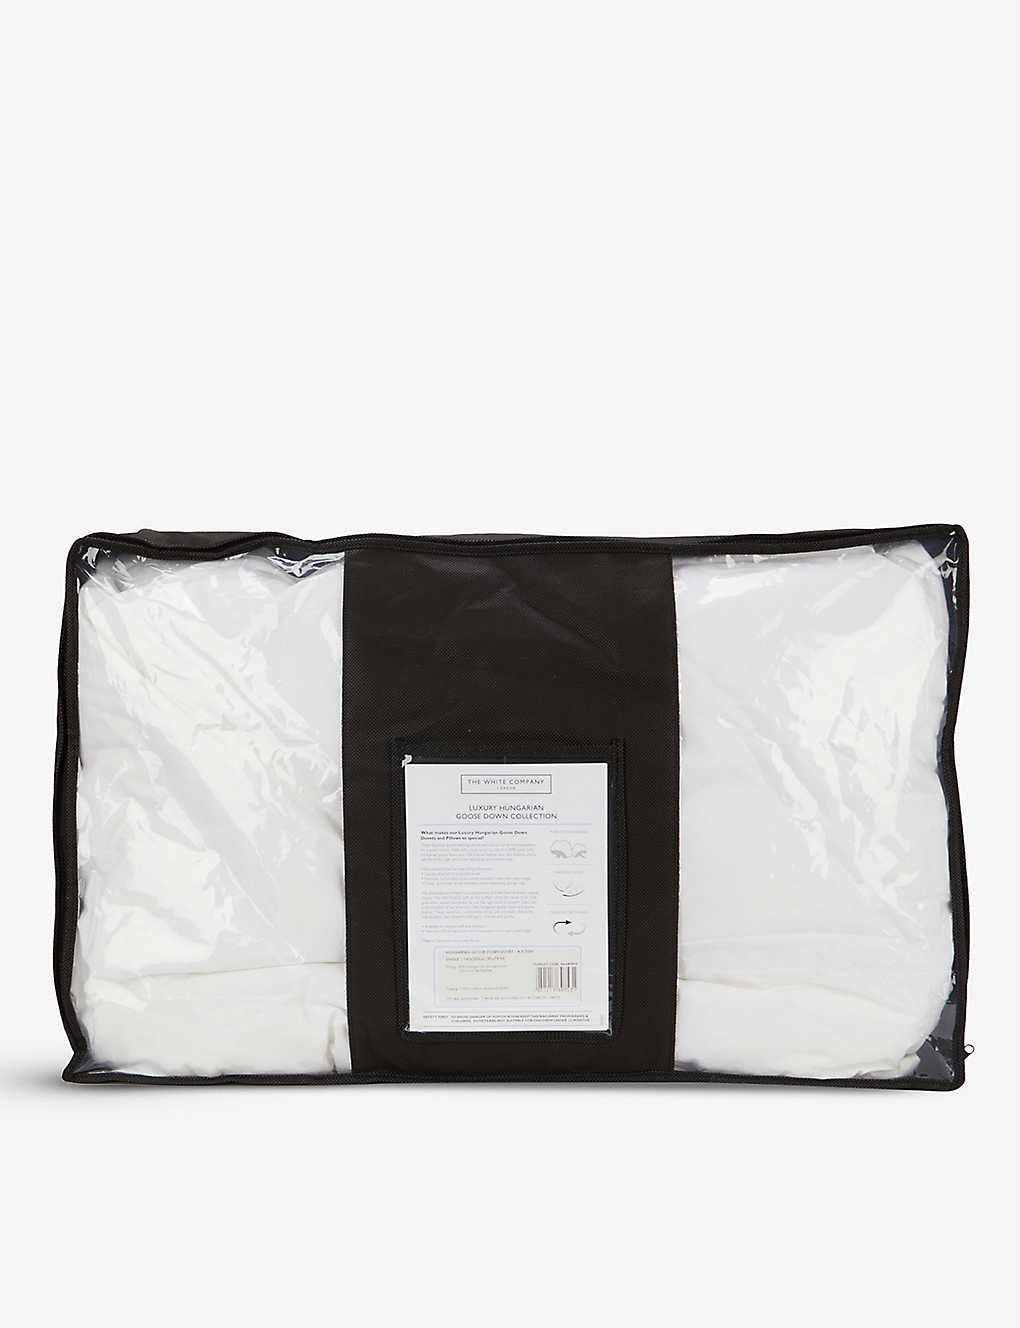 THE WHITE COMPANY: Hungarian goose down and feather 4.5 tog single duvet 140x200cm